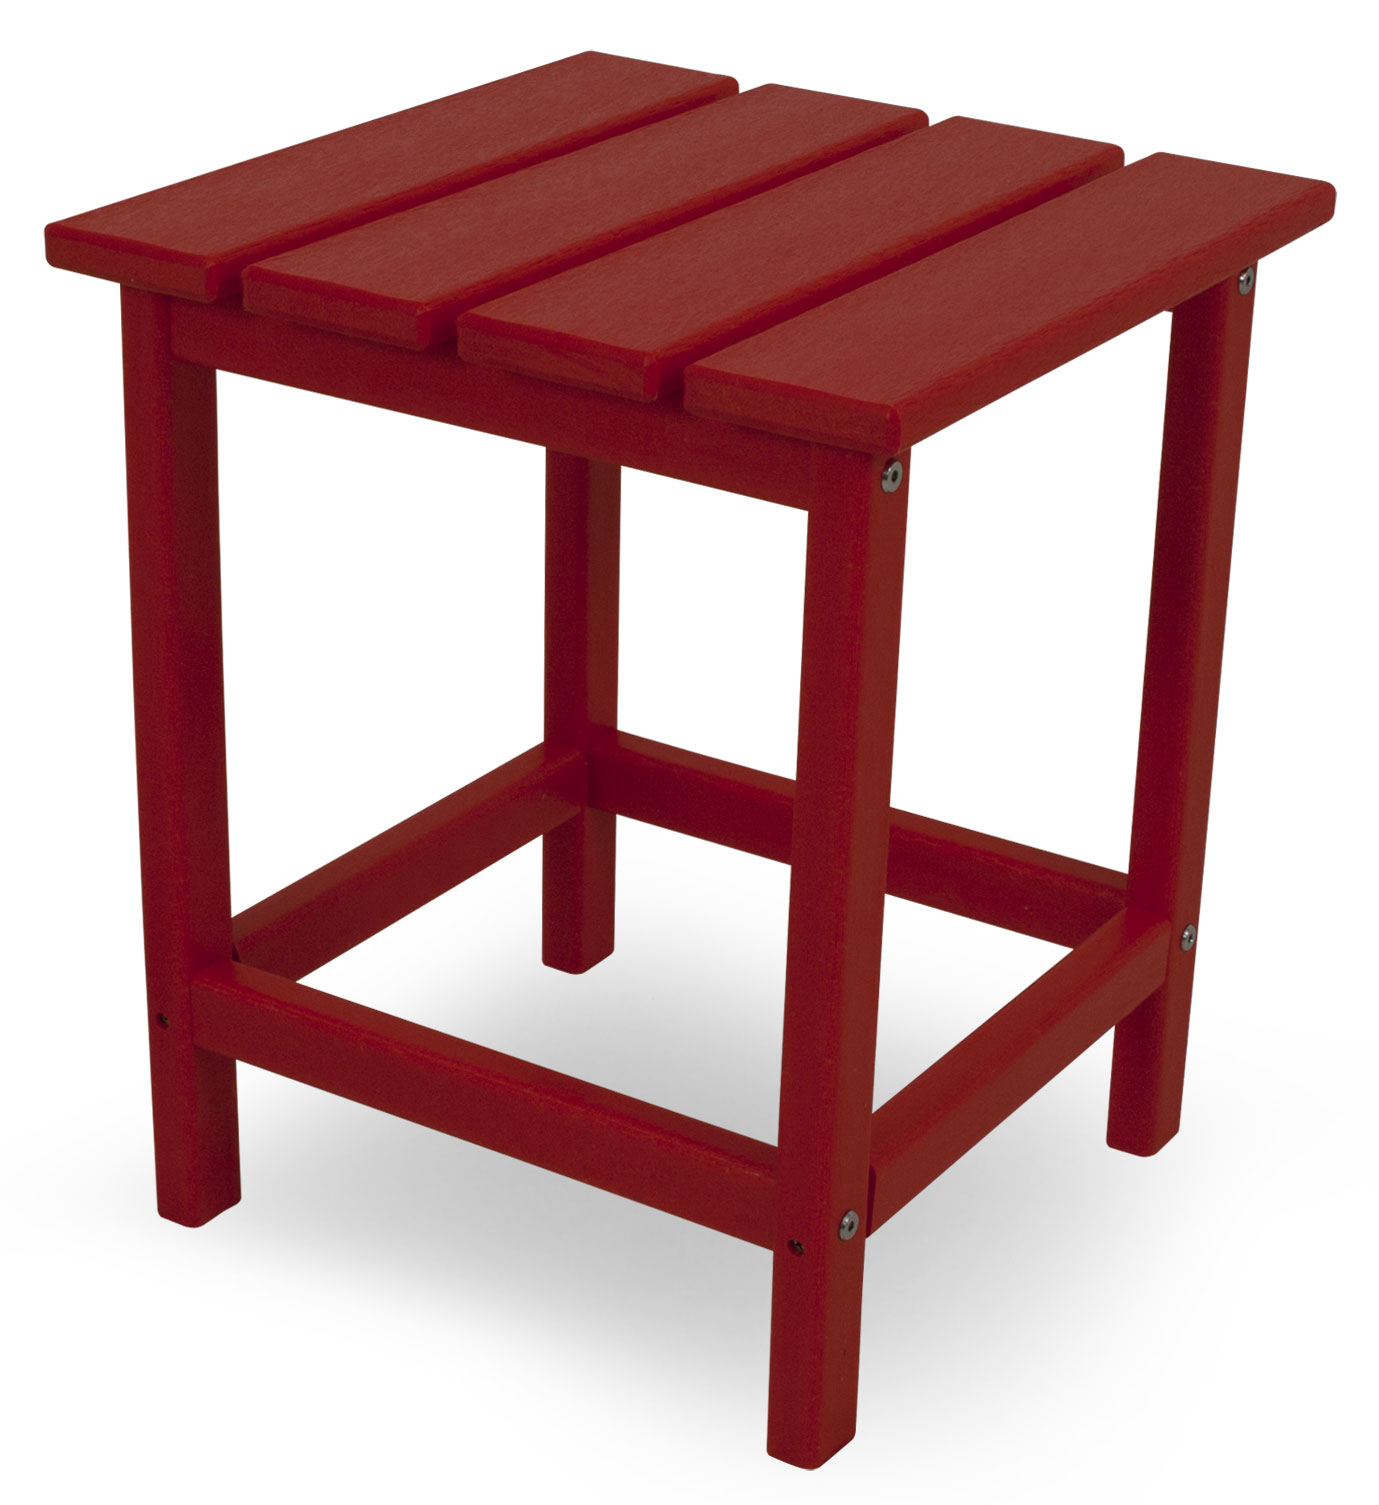 PolyWood Long Island 15 inch Square Side Table - ECT18